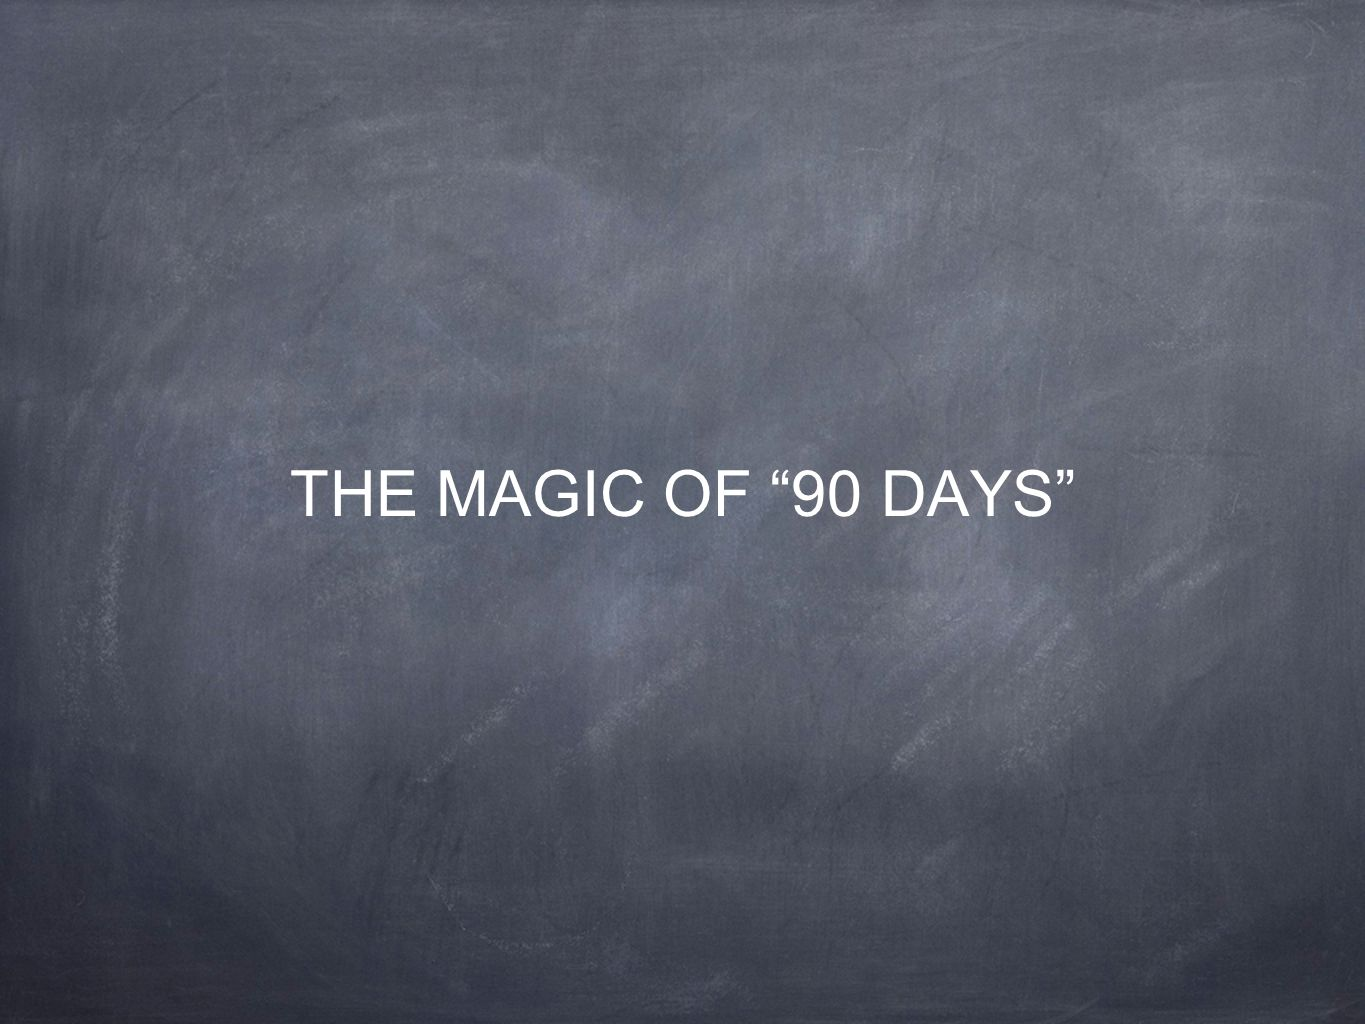 THE MAGIC OF 90 DAYS